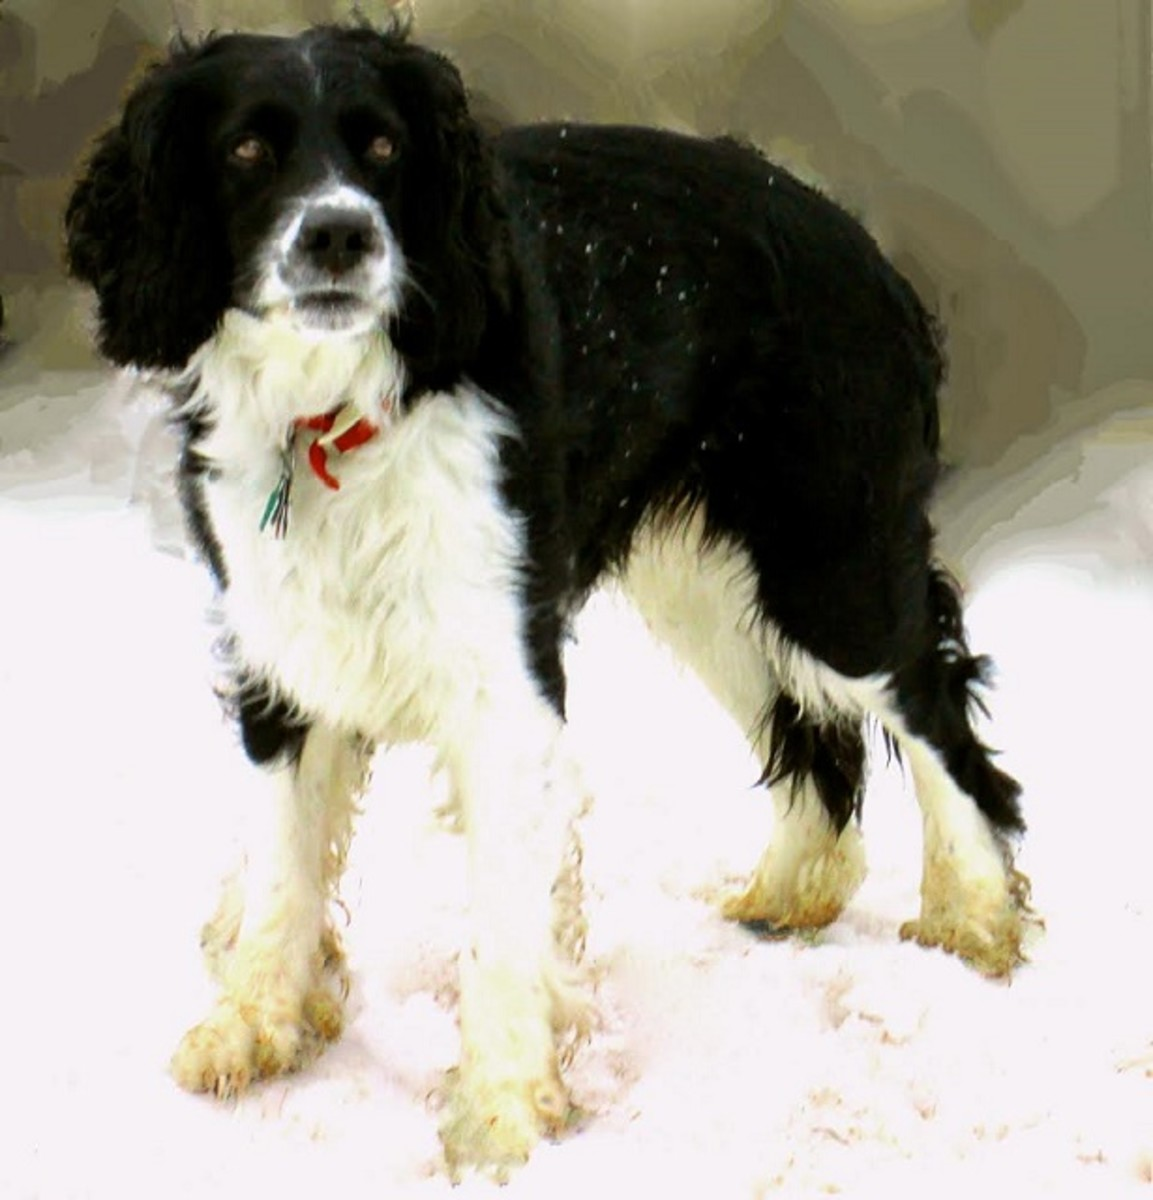 Black and White Spring Spaniel with a winter coat.